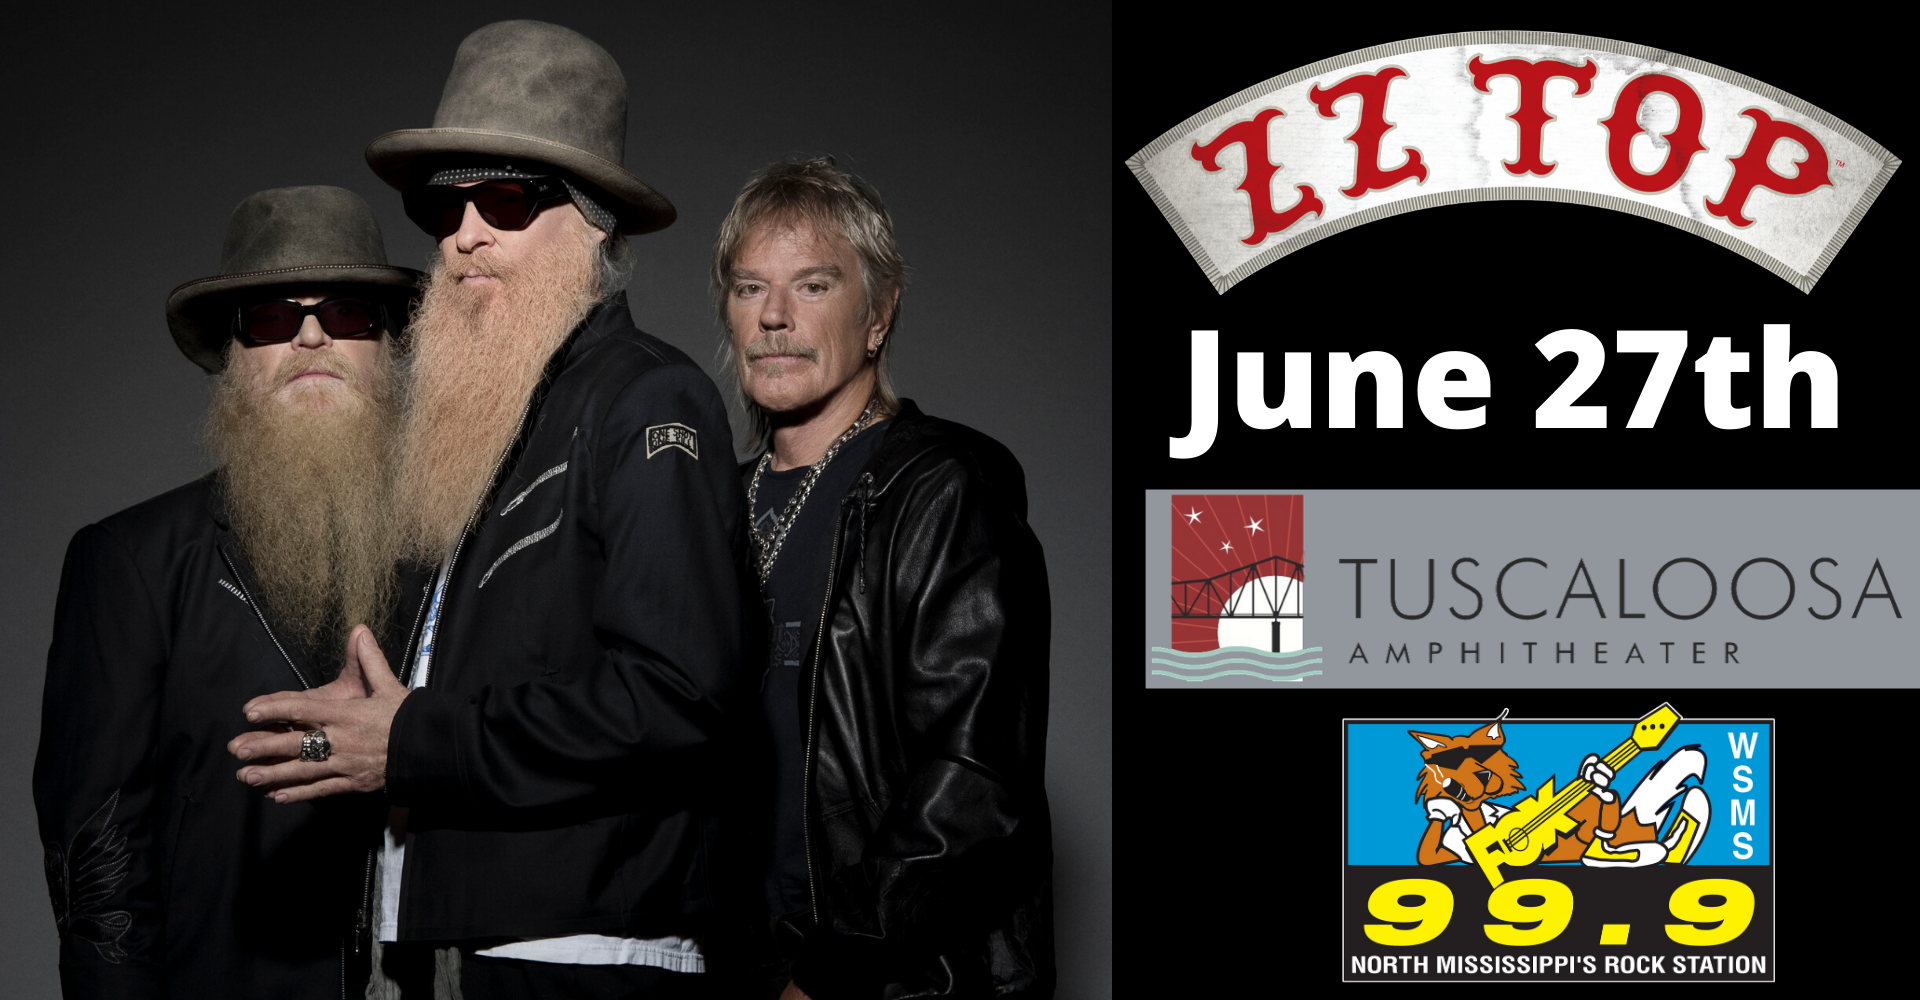 ZZ Top at Tuscaloosa Amphitheater – June 27th